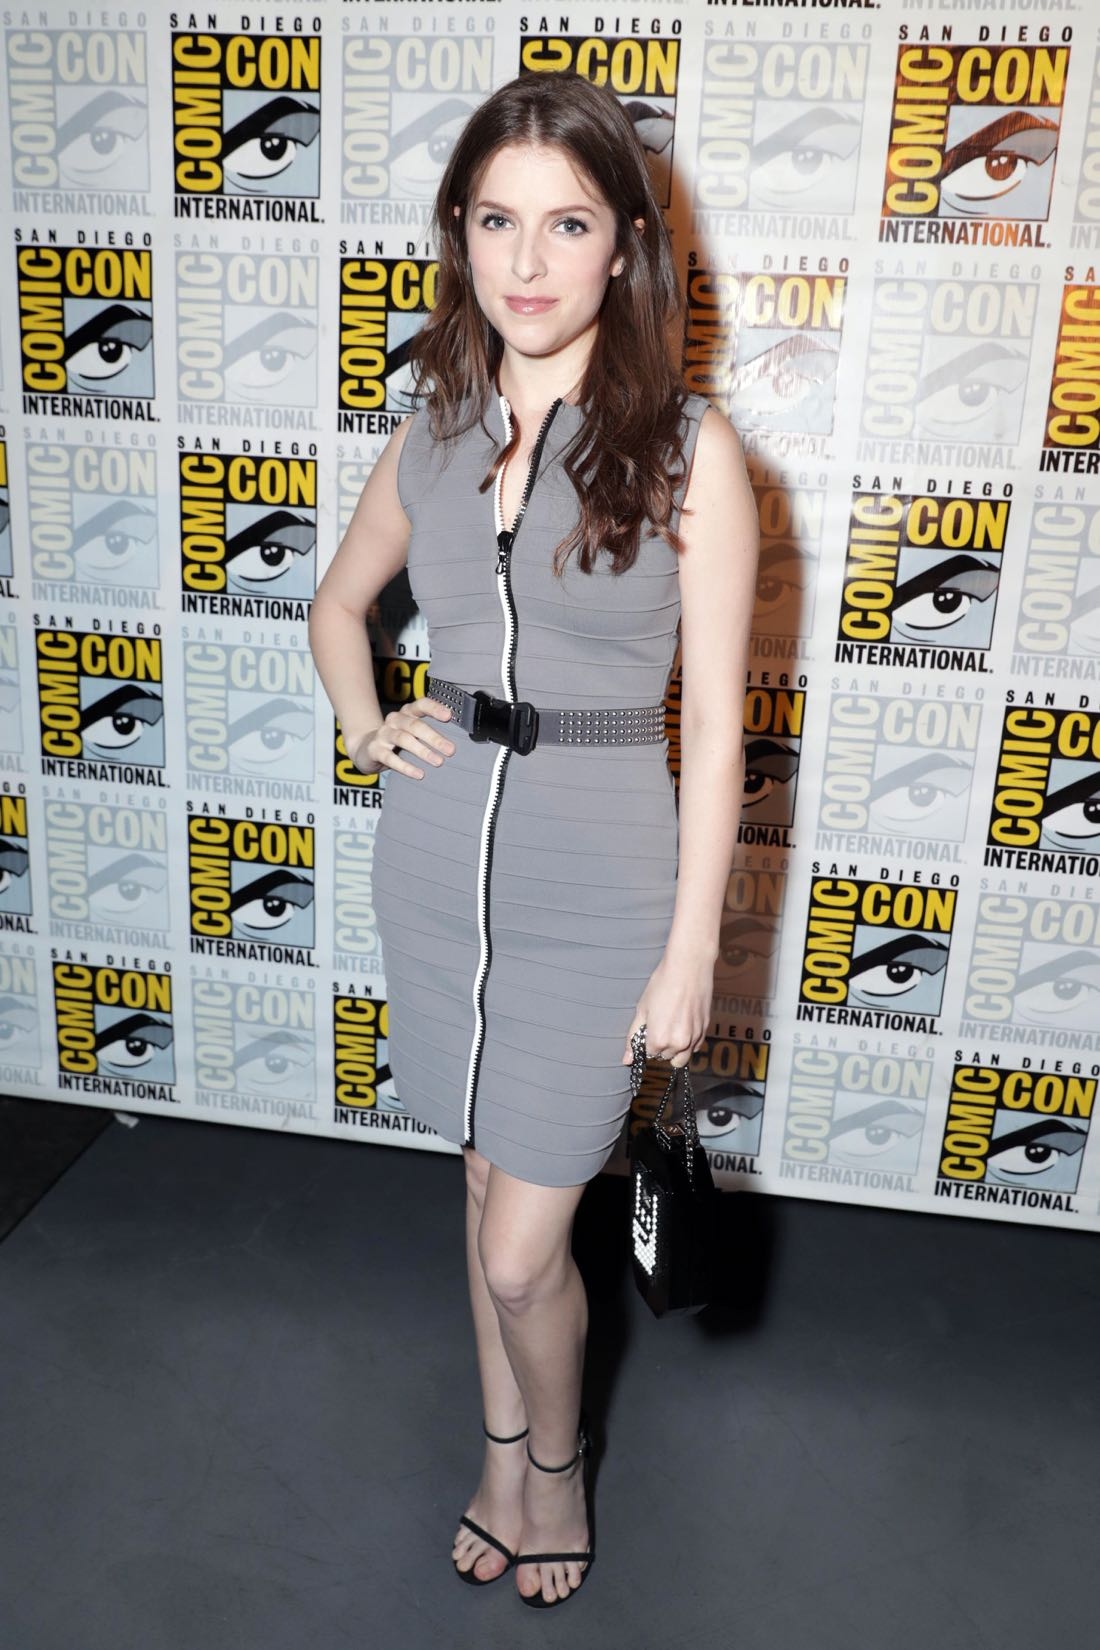 TROLLS voice actor Anna Kendrick backstage at DreamWorks Animation's Comic Con Hall H Panel.